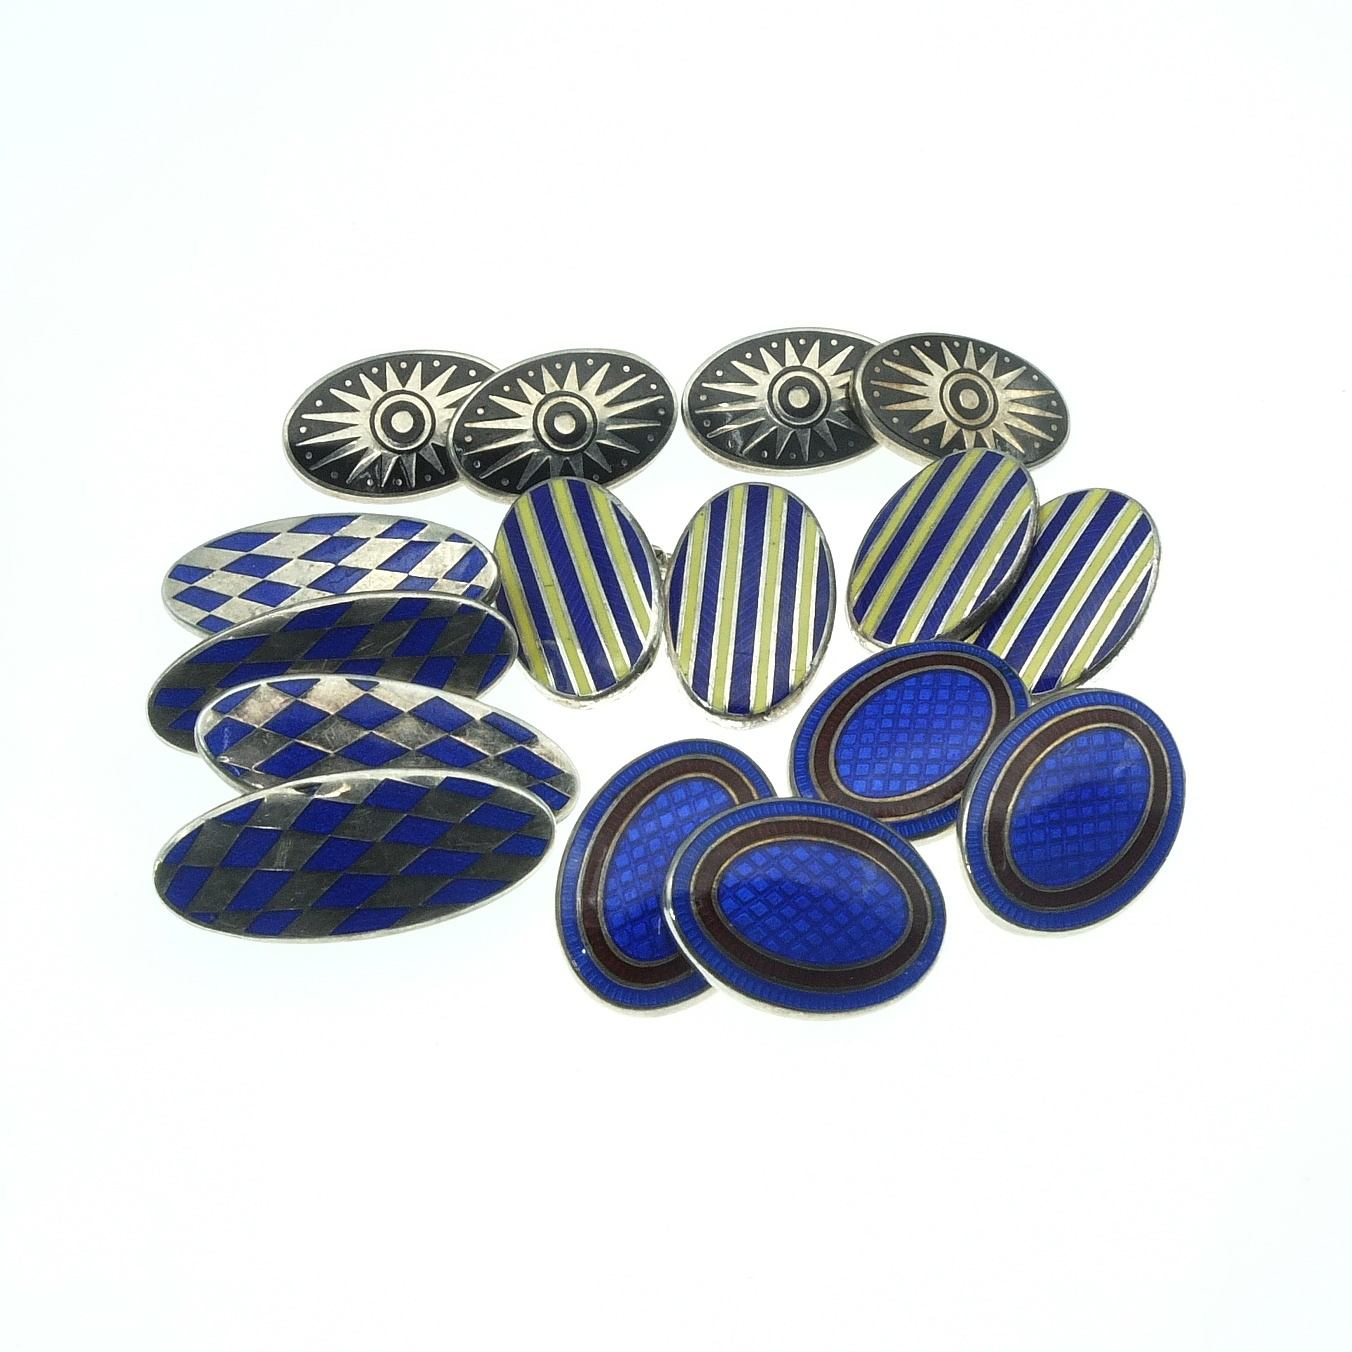 'Four Pairs of Sterling Silver and Enamel Double Cufflinks'